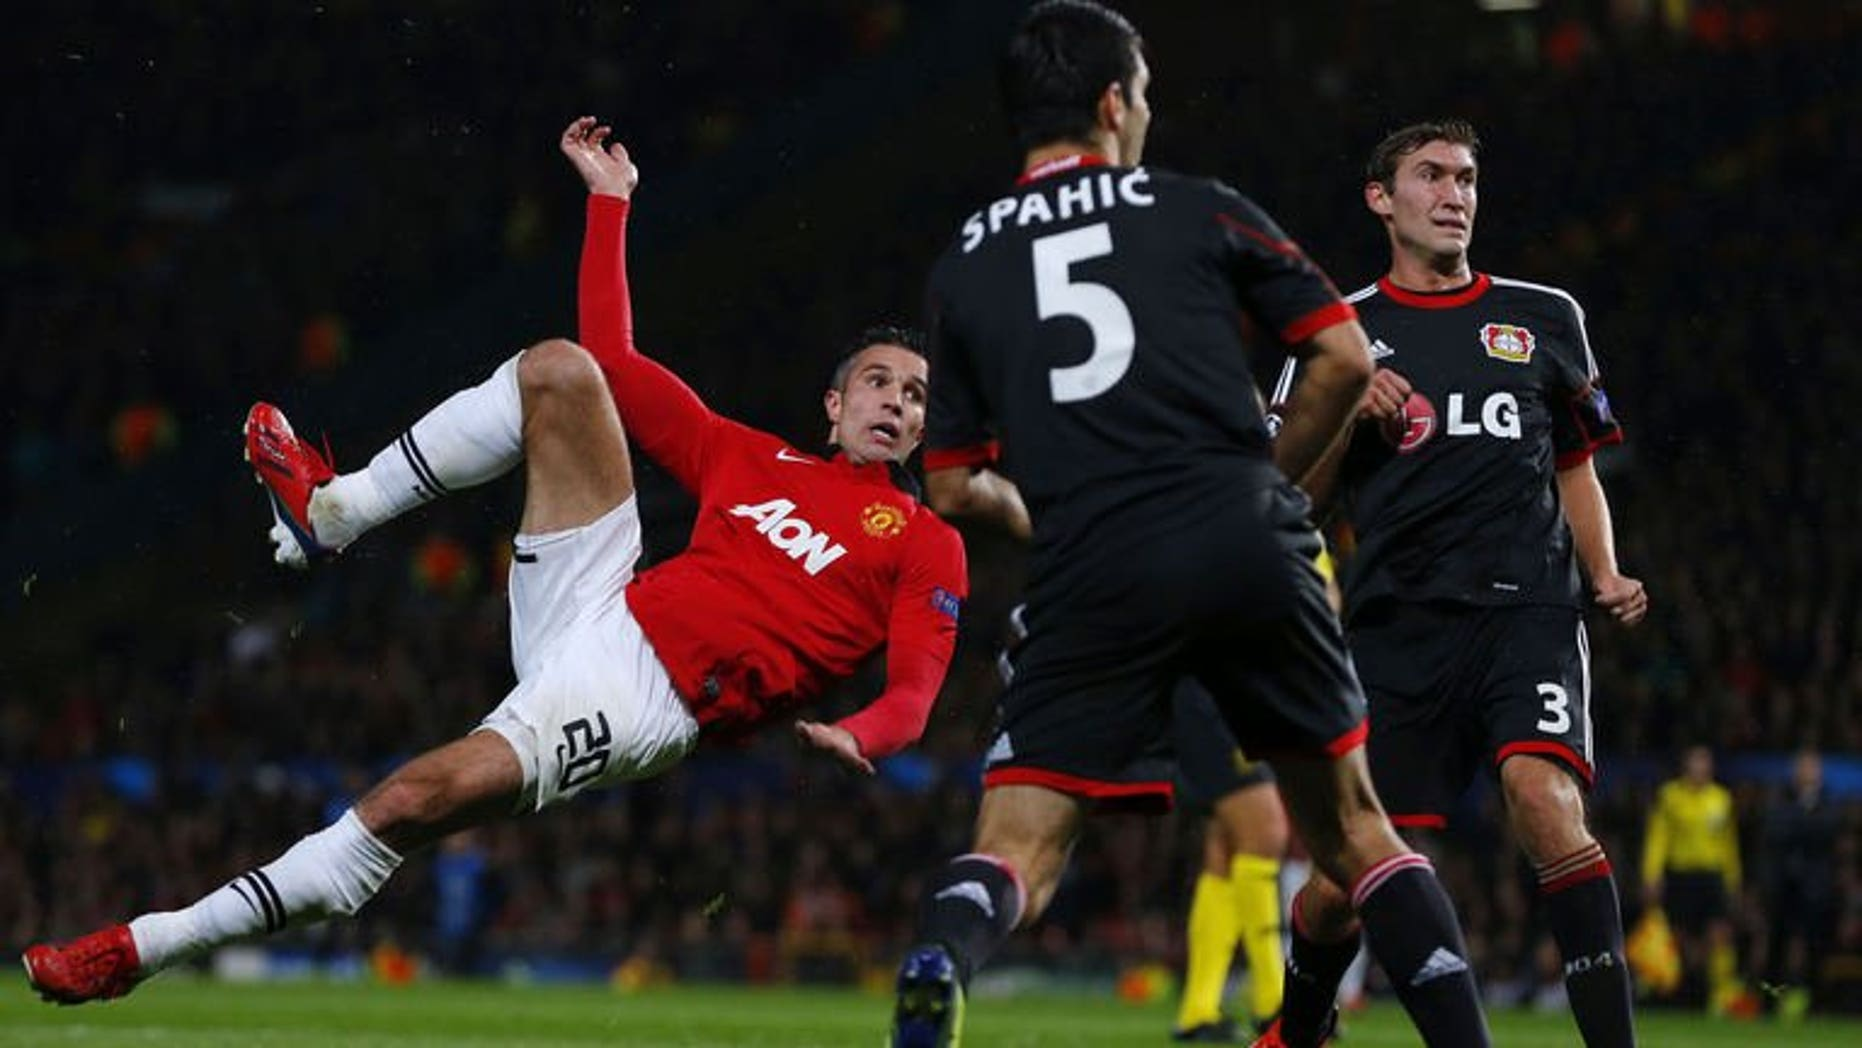 Manchester United striker Robin van Persie (L) scores during the Champions League Group A match against Bayer Leverkusen at Old Trafford in Manchester, north west England on September 17, 2013.